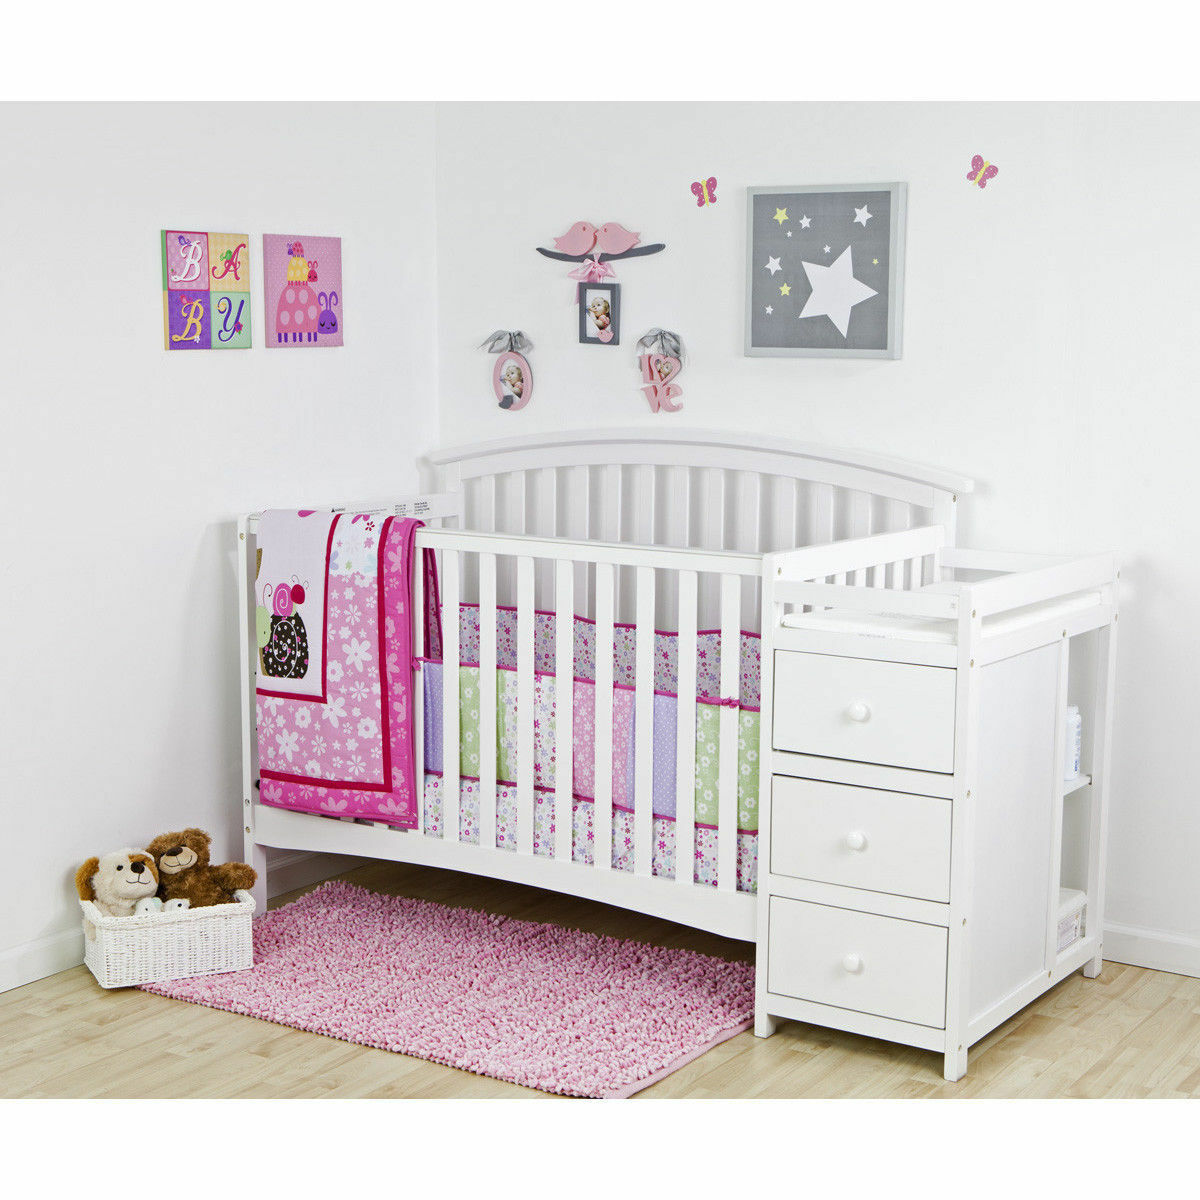 5 in 1 Side Convertible Crib Changer Baby Toddler Bed White